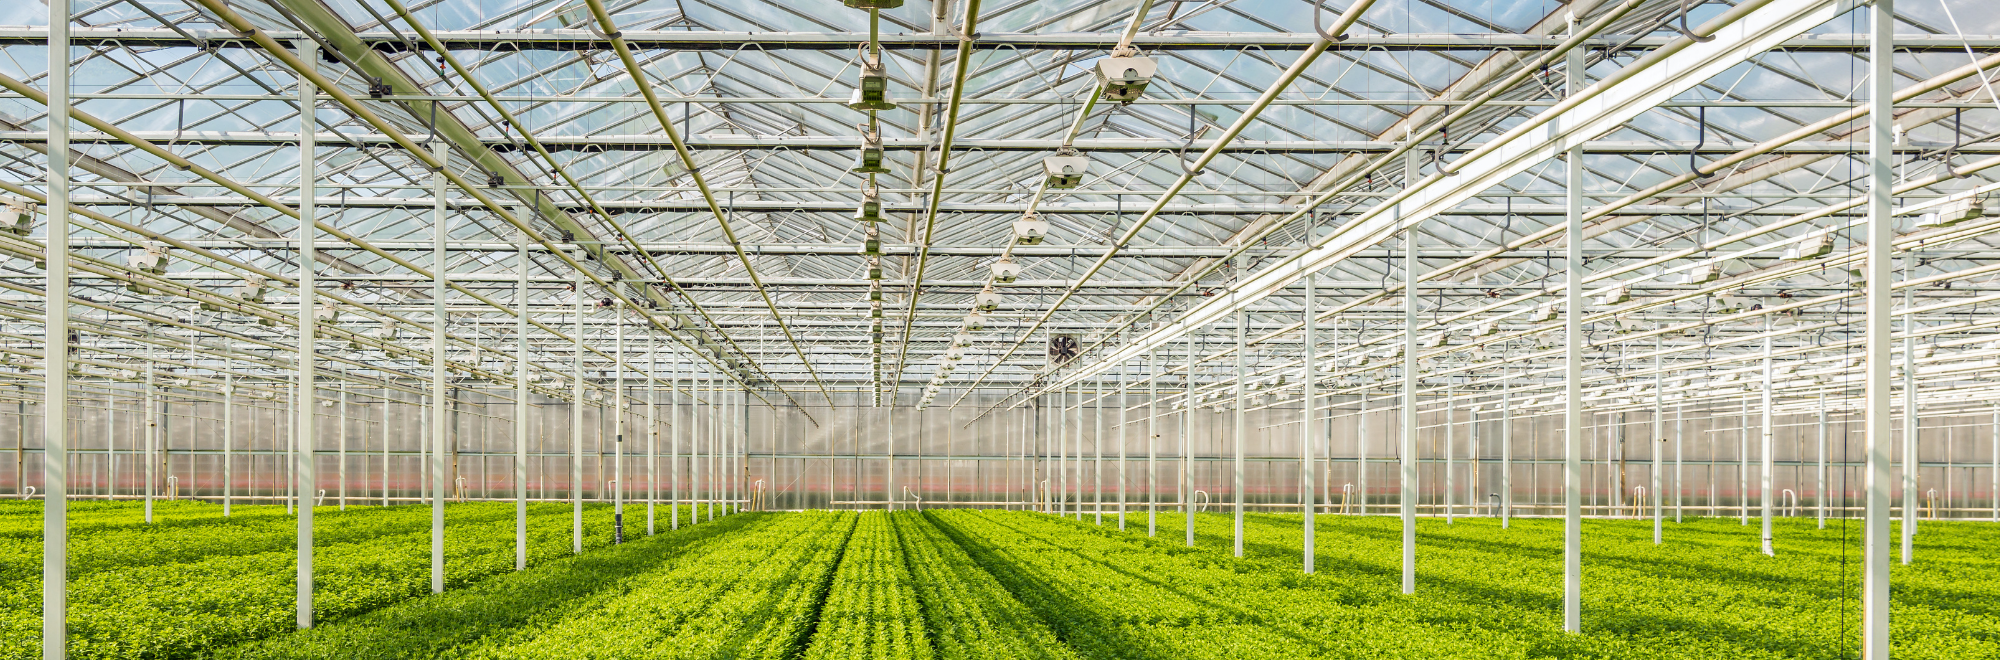 plants growing in a high-tech greenhouse